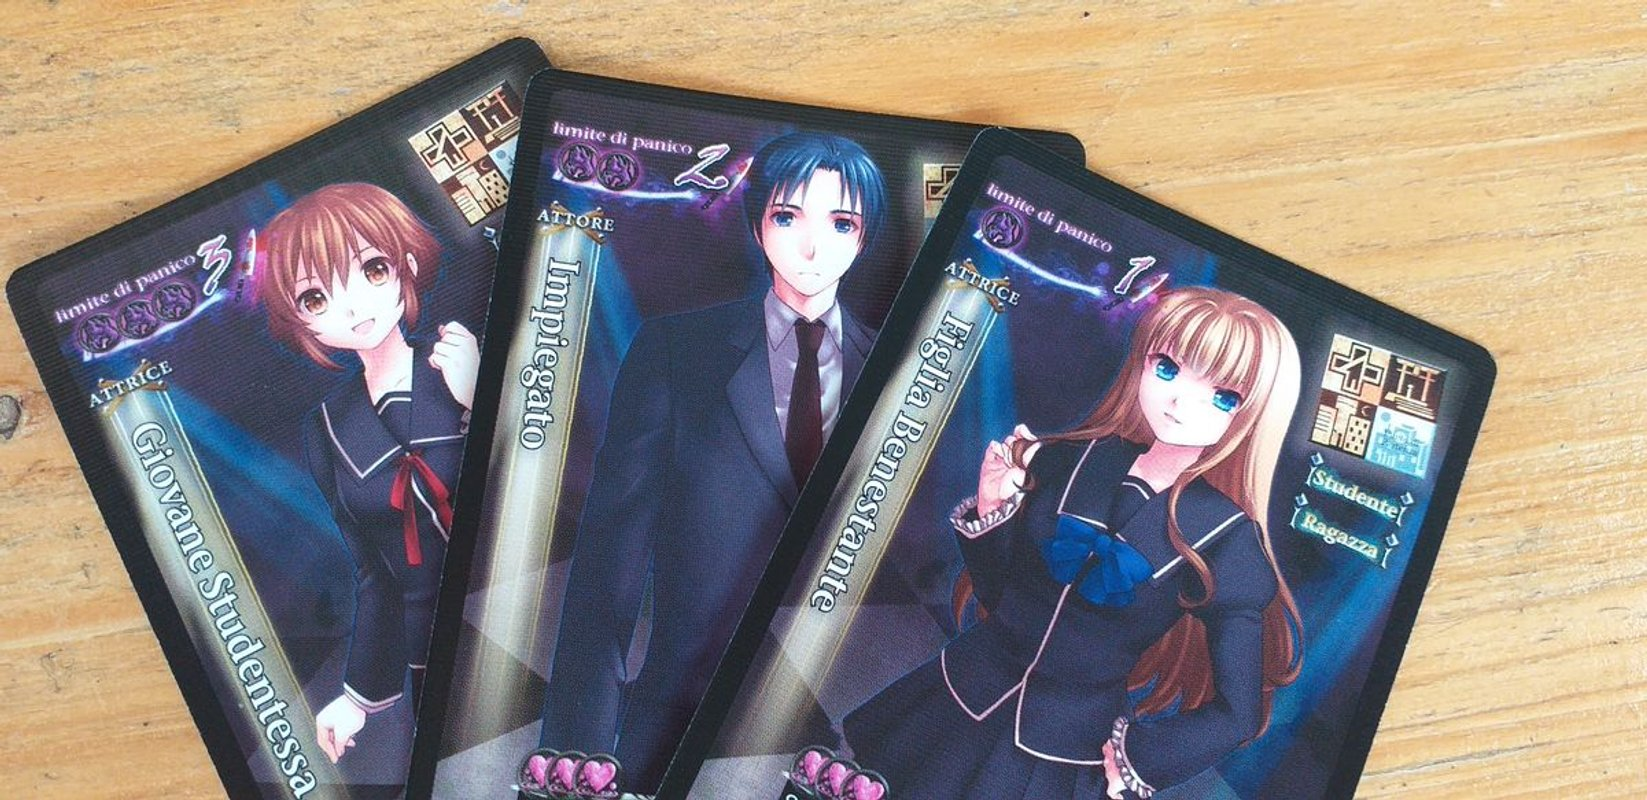 Tragedy Looper cards